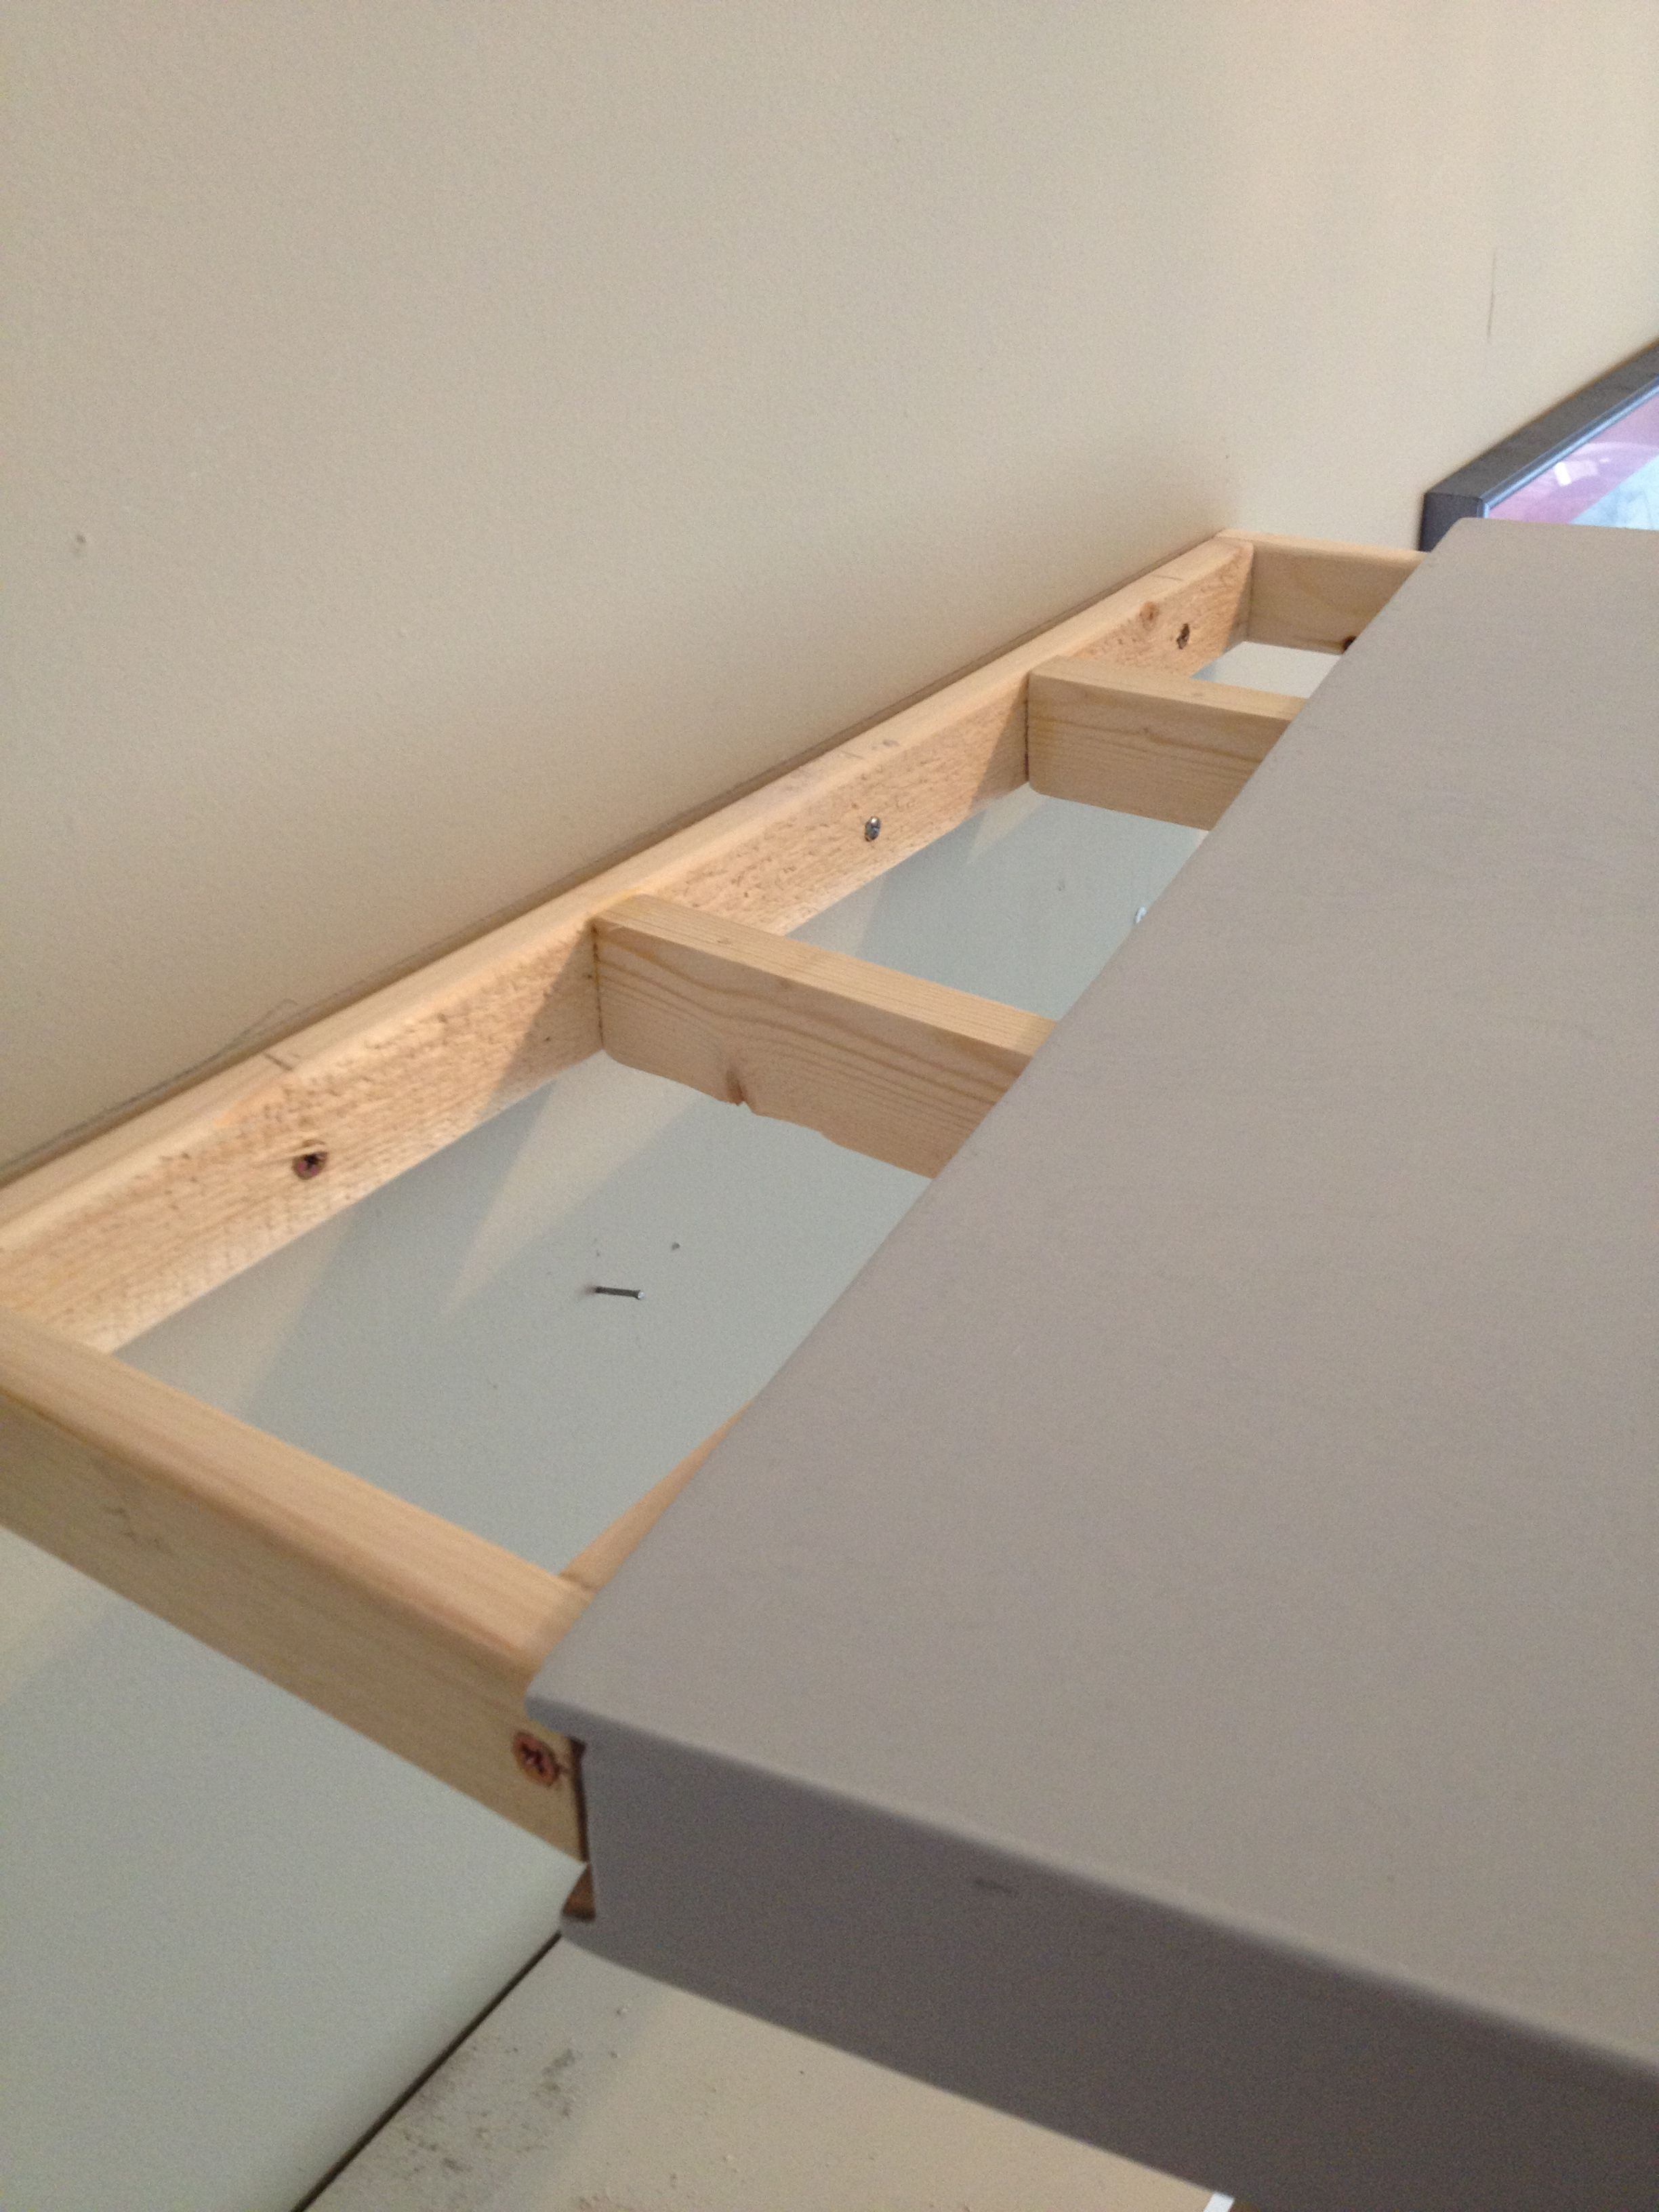 Diy Floating Shelves Floating Shelves Diy Floating Shelves Wood Floating Shelves